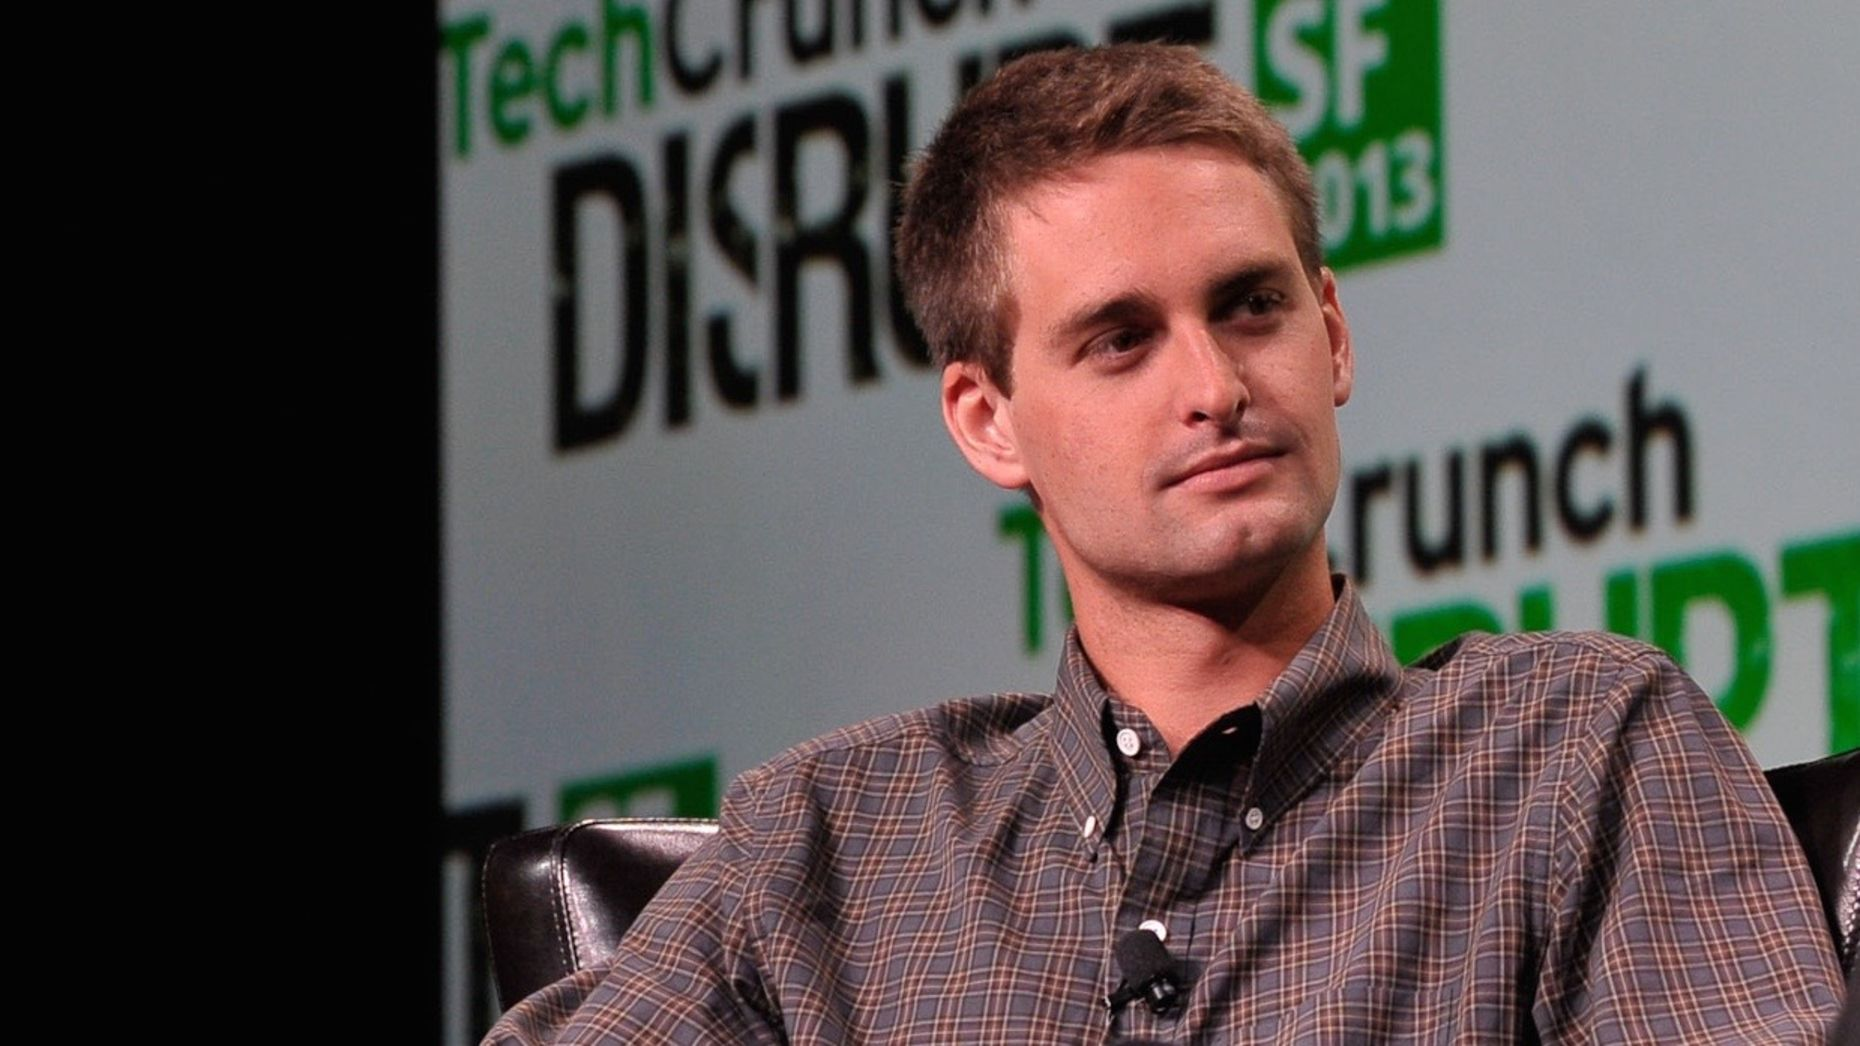 Snap CEO Evan Spiegel. Photo by Flickr/TechCrunch.